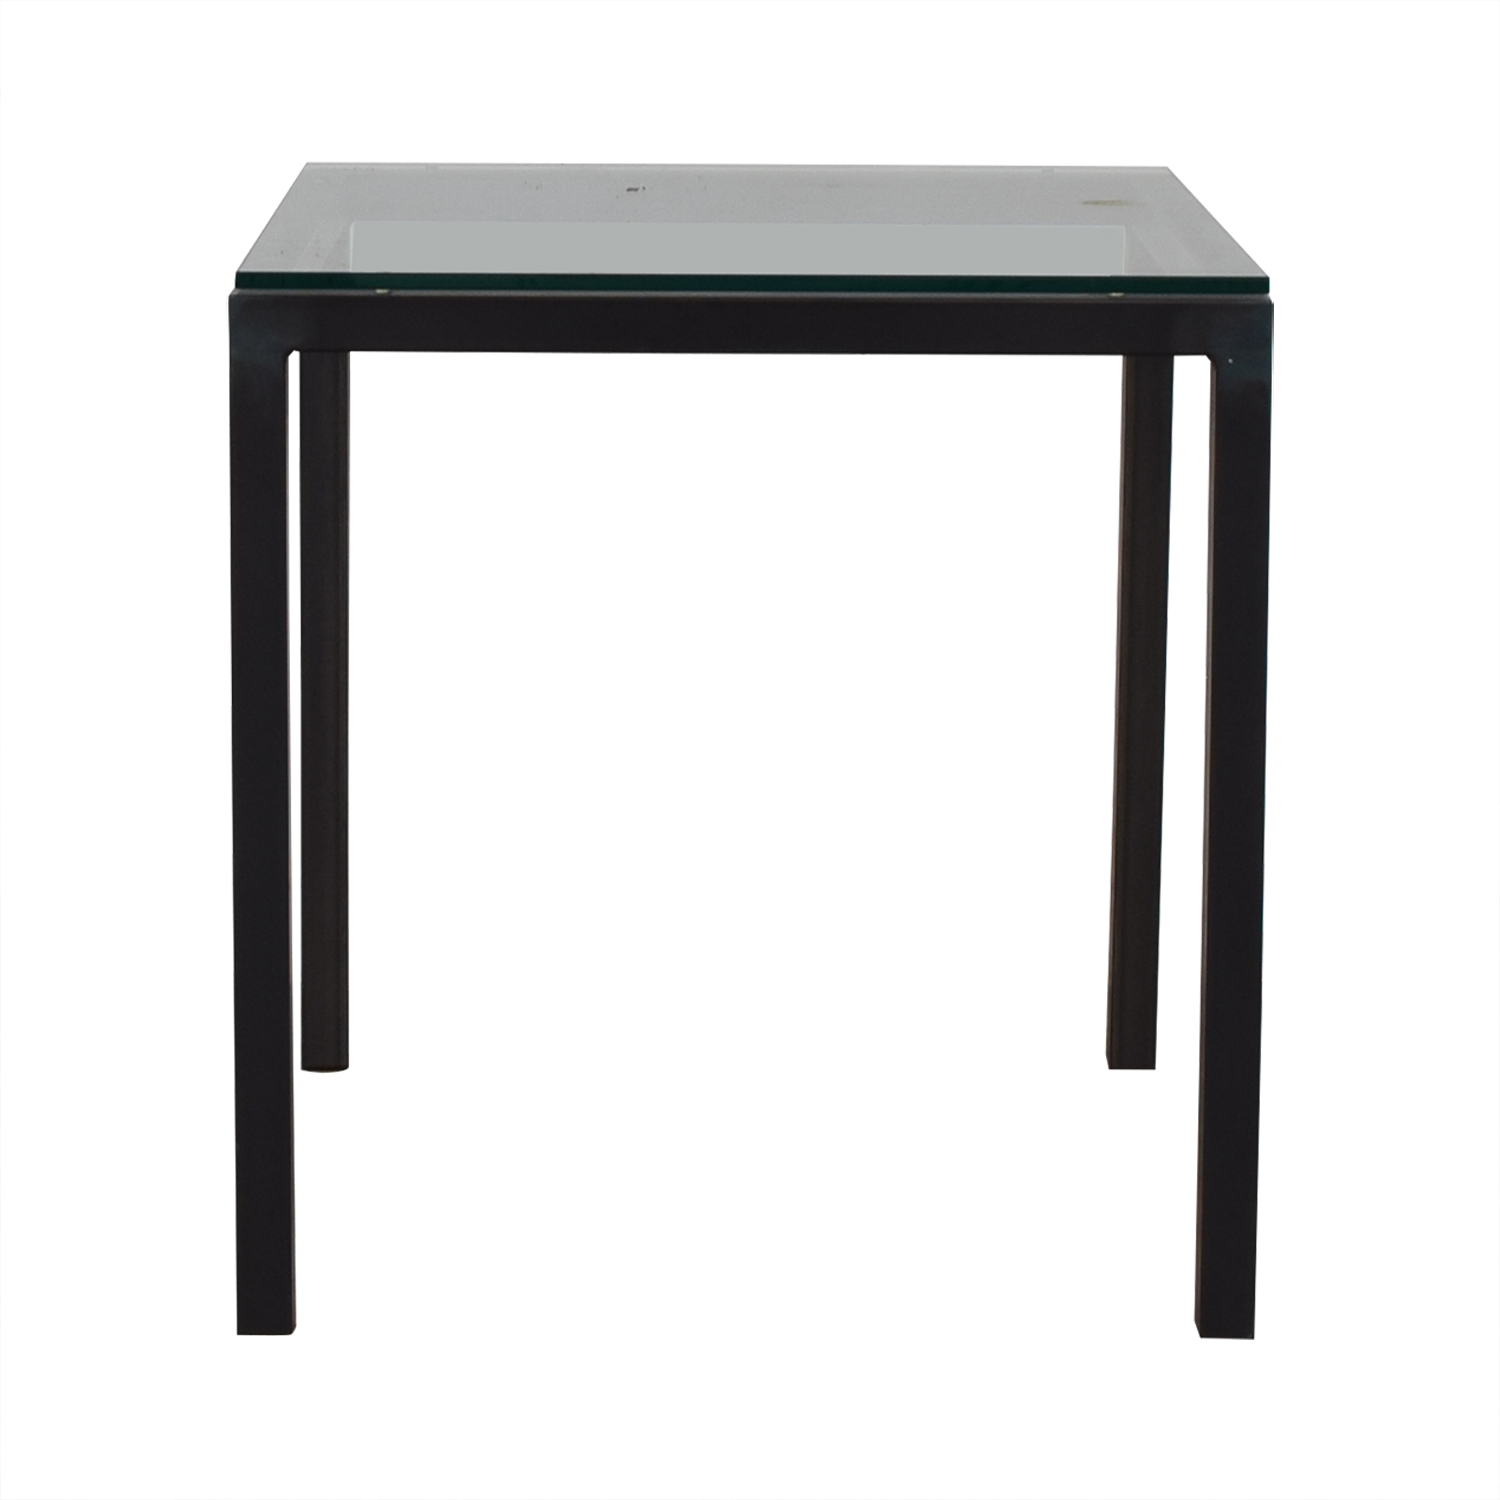 Room & Board Room & Board Parsons Glass and Black End Table used